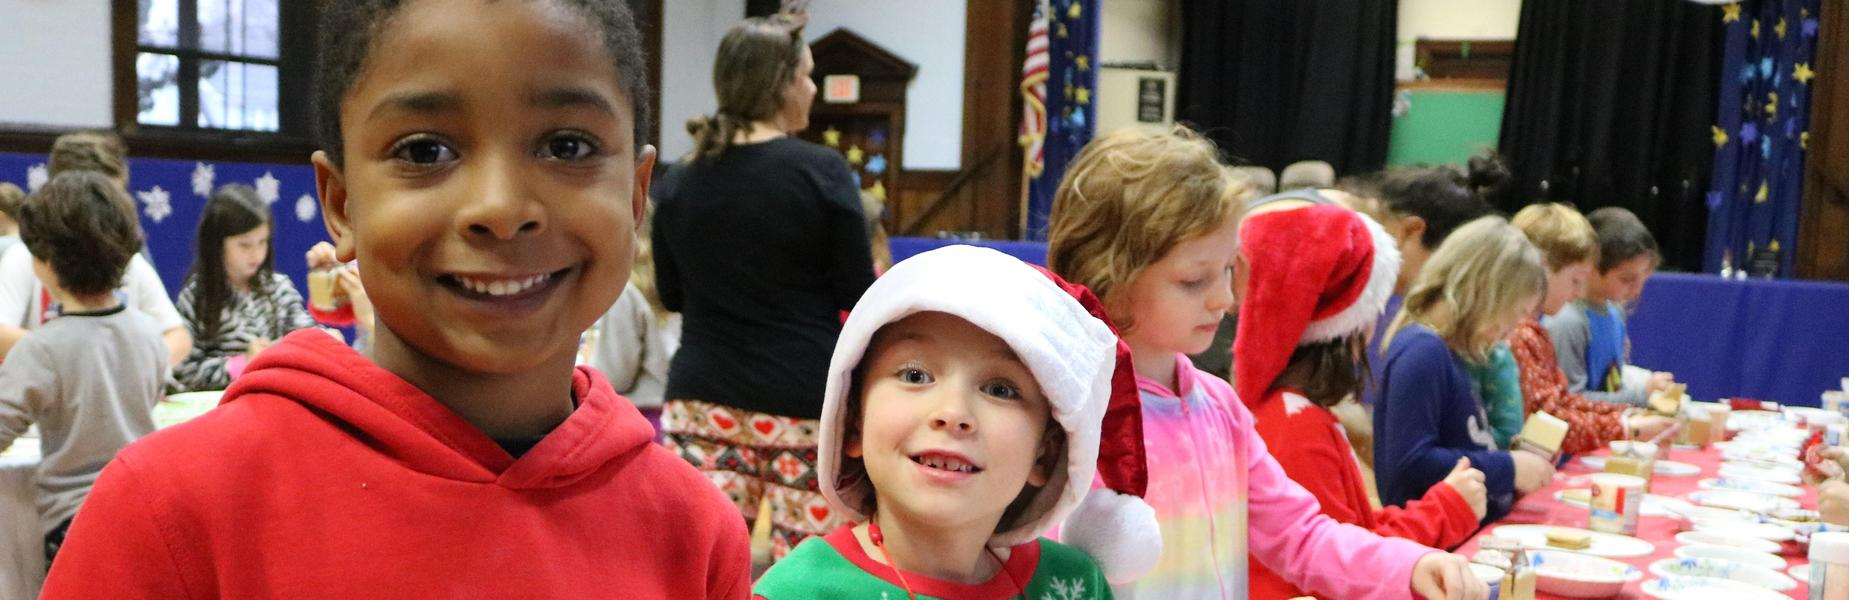 McKinley School 2nd graders make gingerbread houses, one of the many holiday activities taking place around the district.